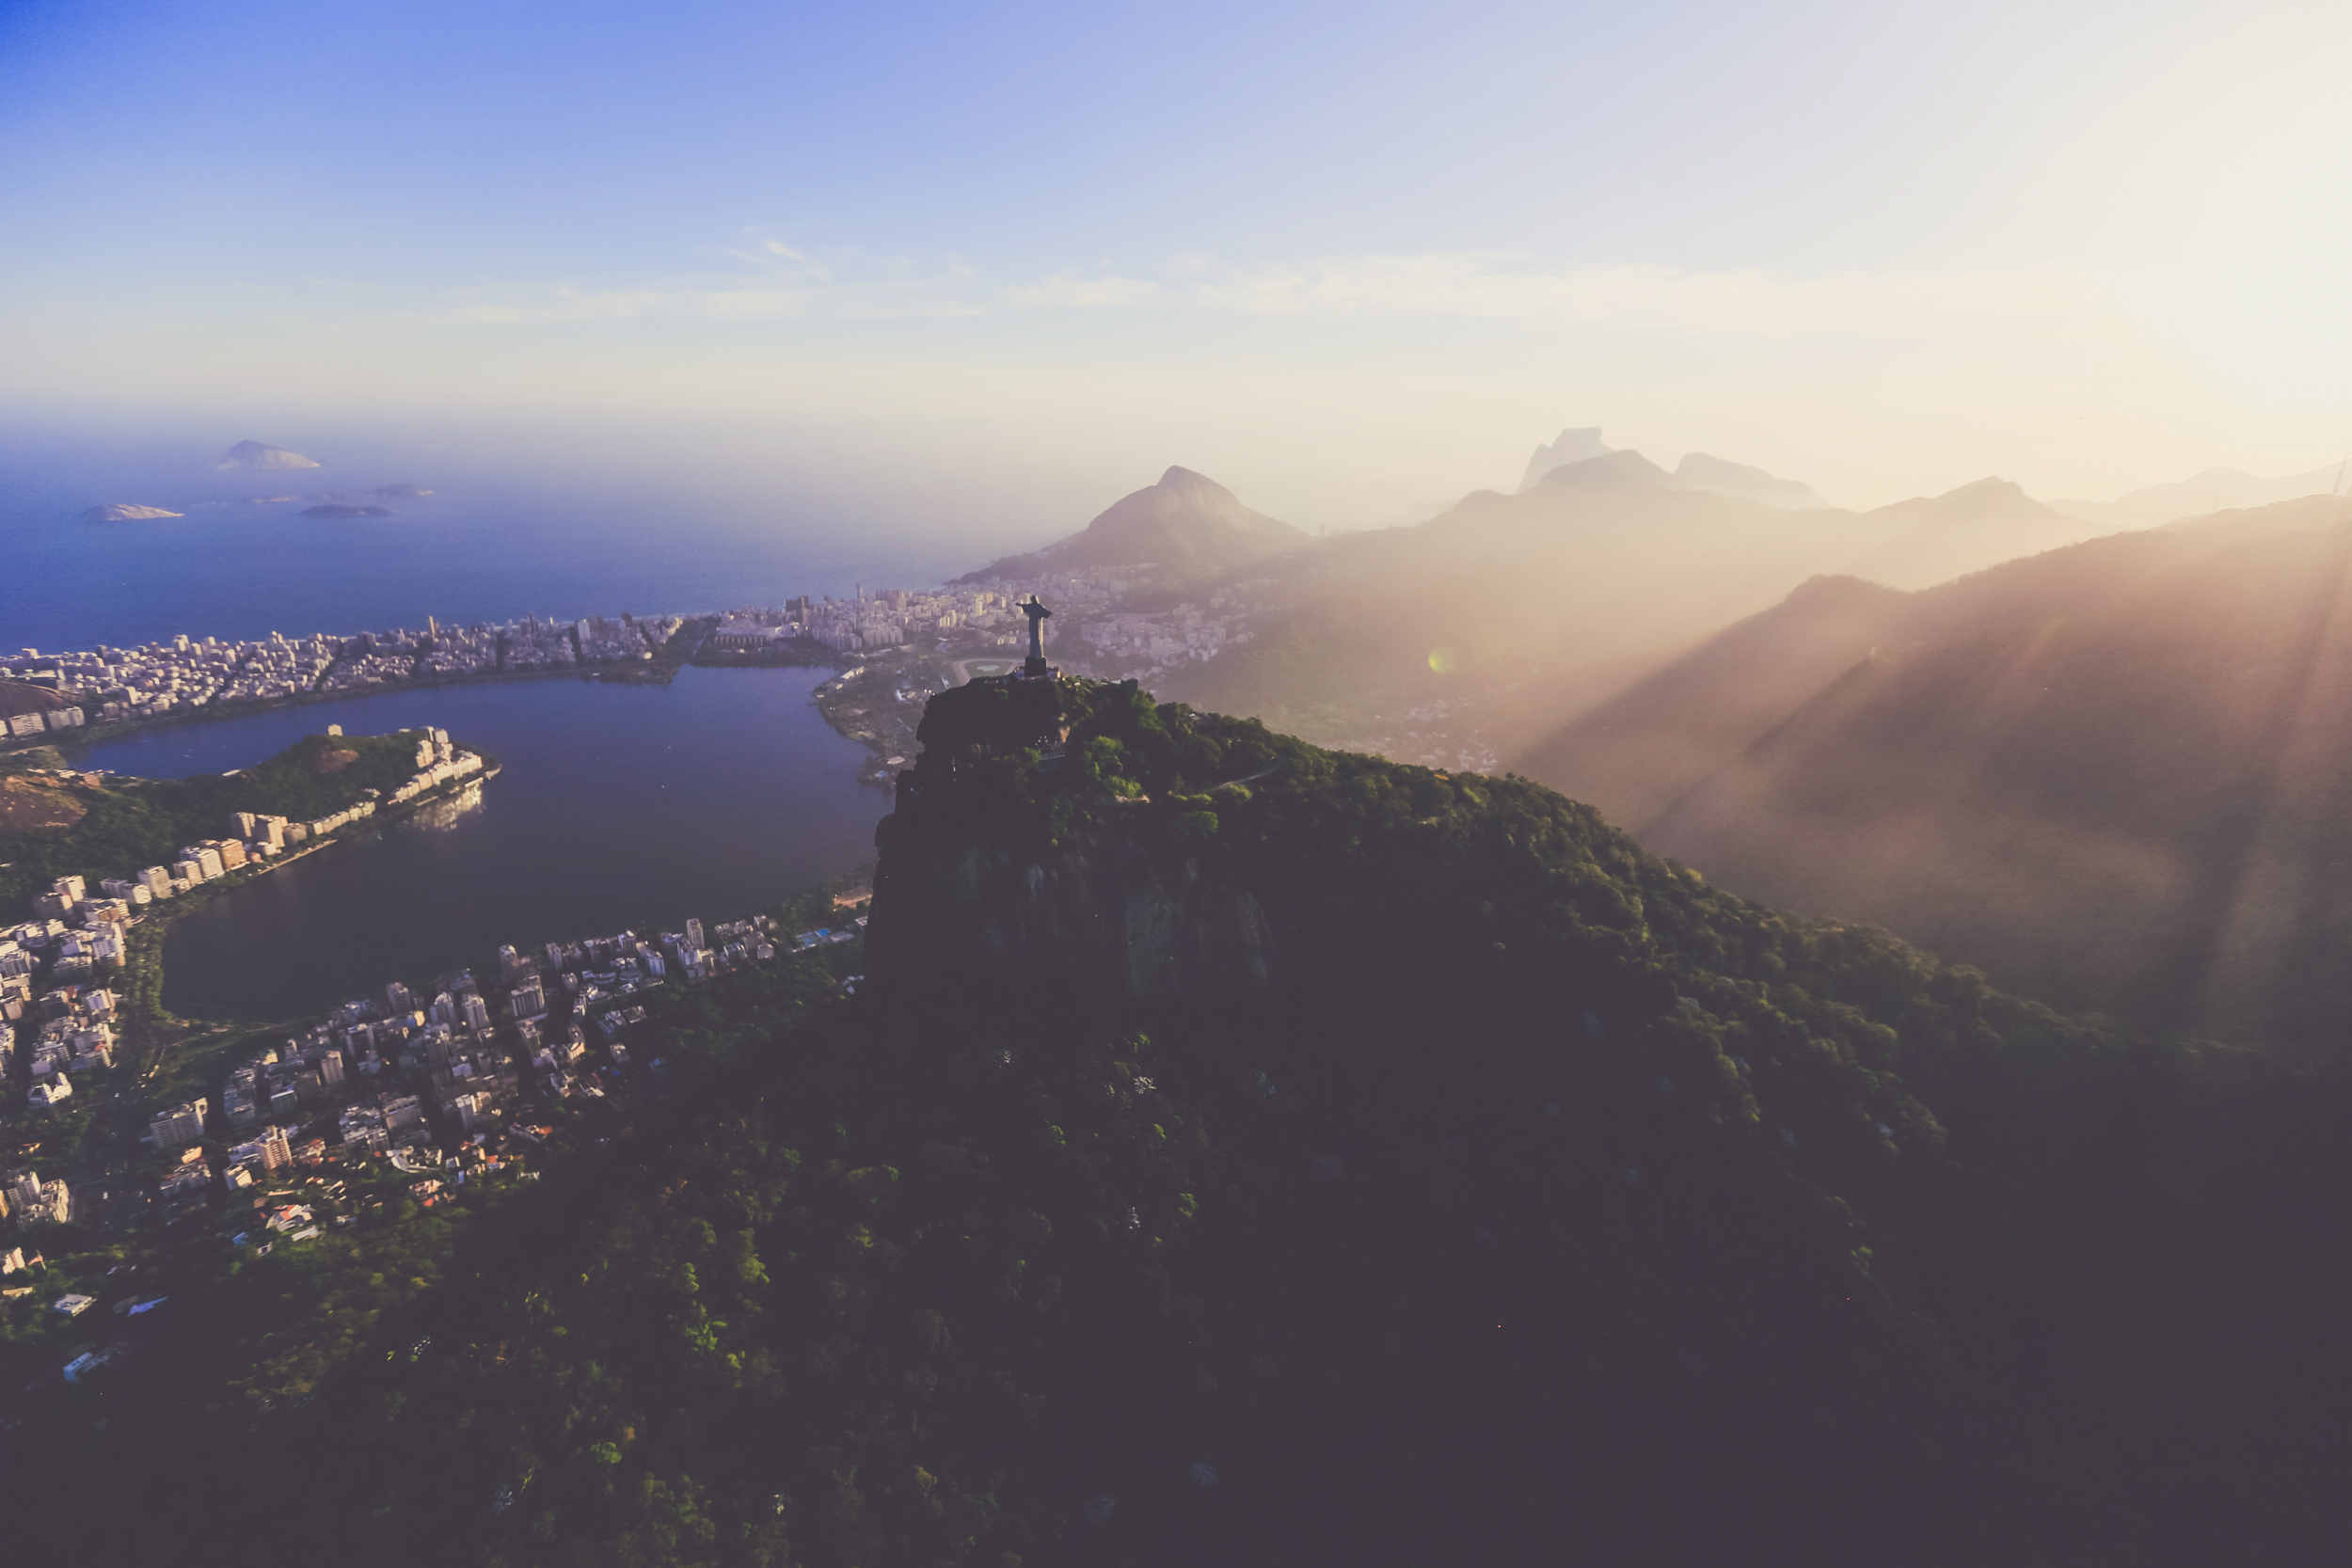 Christ the Redeemer looking over Rio - we took this picture while on our heli ride!